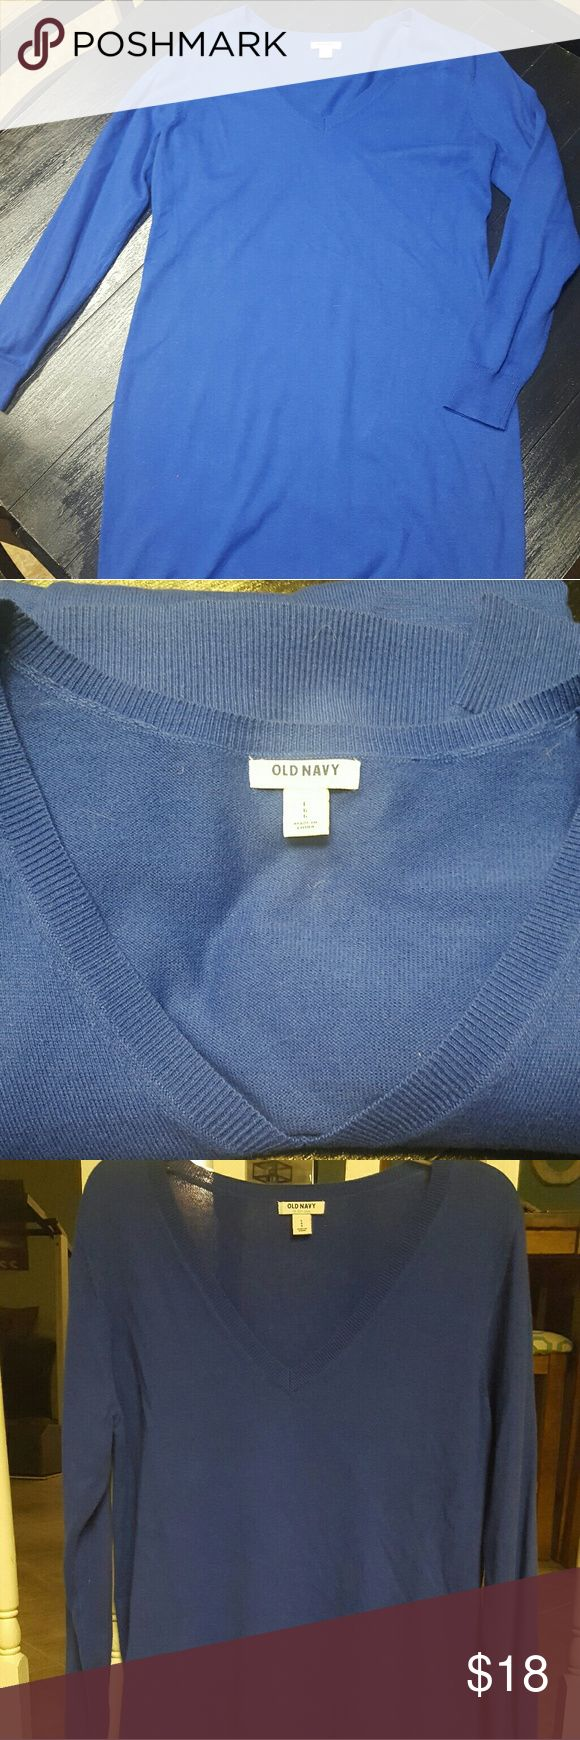 Old Navy Sweater Dress in Cobalt Blue Casual and comfortable, in perfect condition Old Navy Dresses Midi